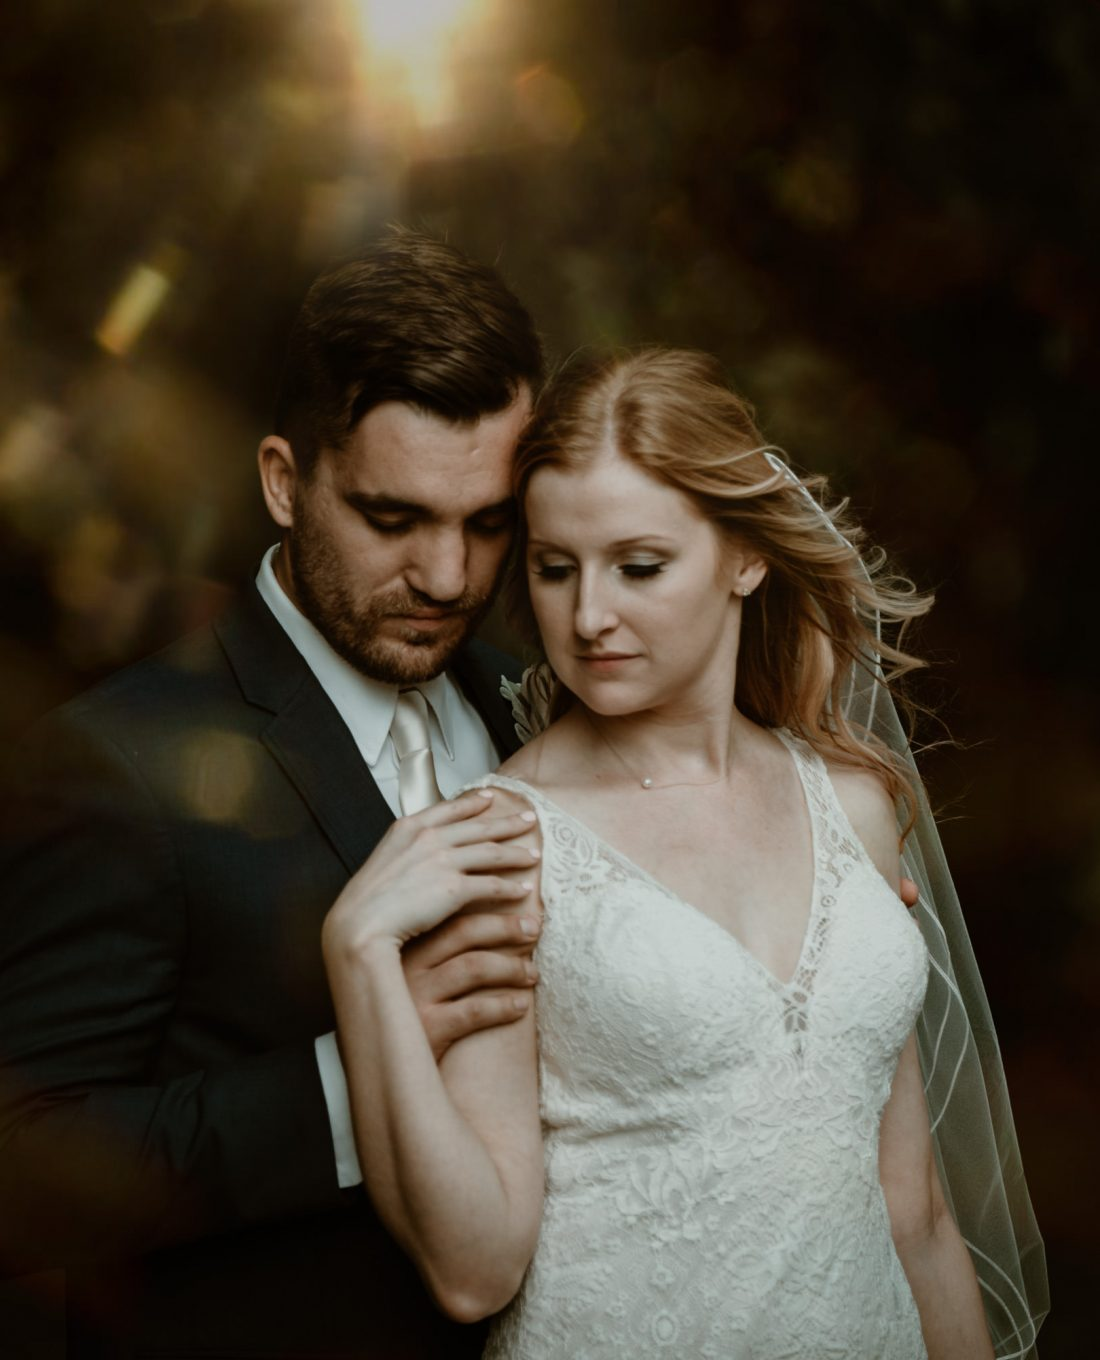 A bride and groom standing together in an intimate pose, with magical light surrounding them.